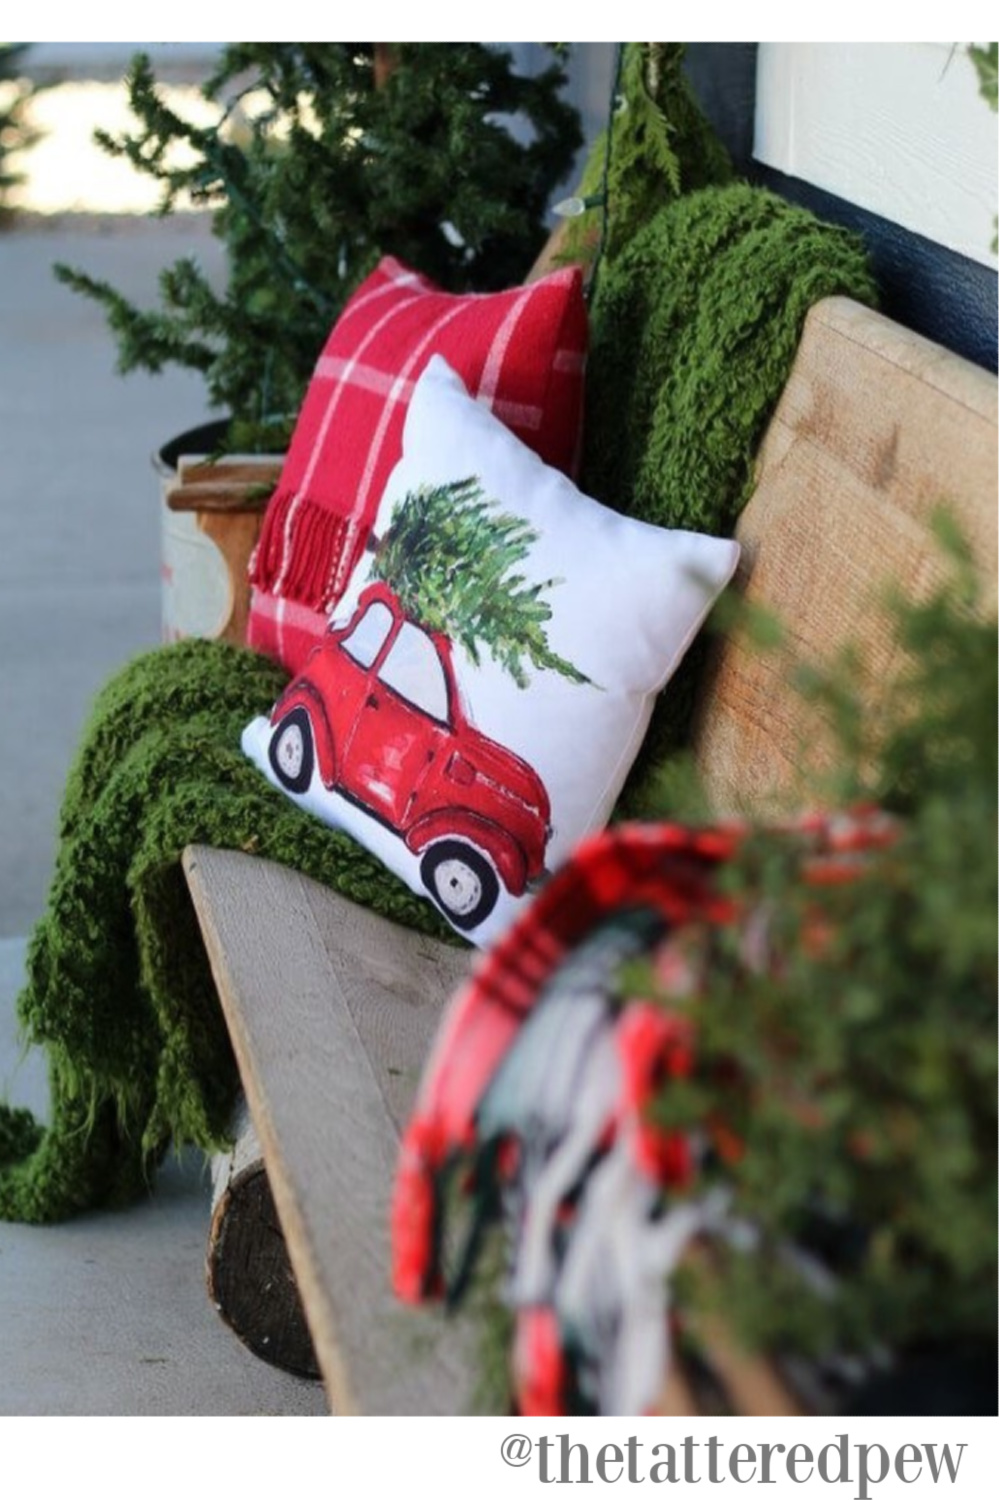 Rustic farmhouse Christmas decor with church pew and pillows - The Tattered Pew. #farmhousechristmas #countrychristmas #holidaydecor